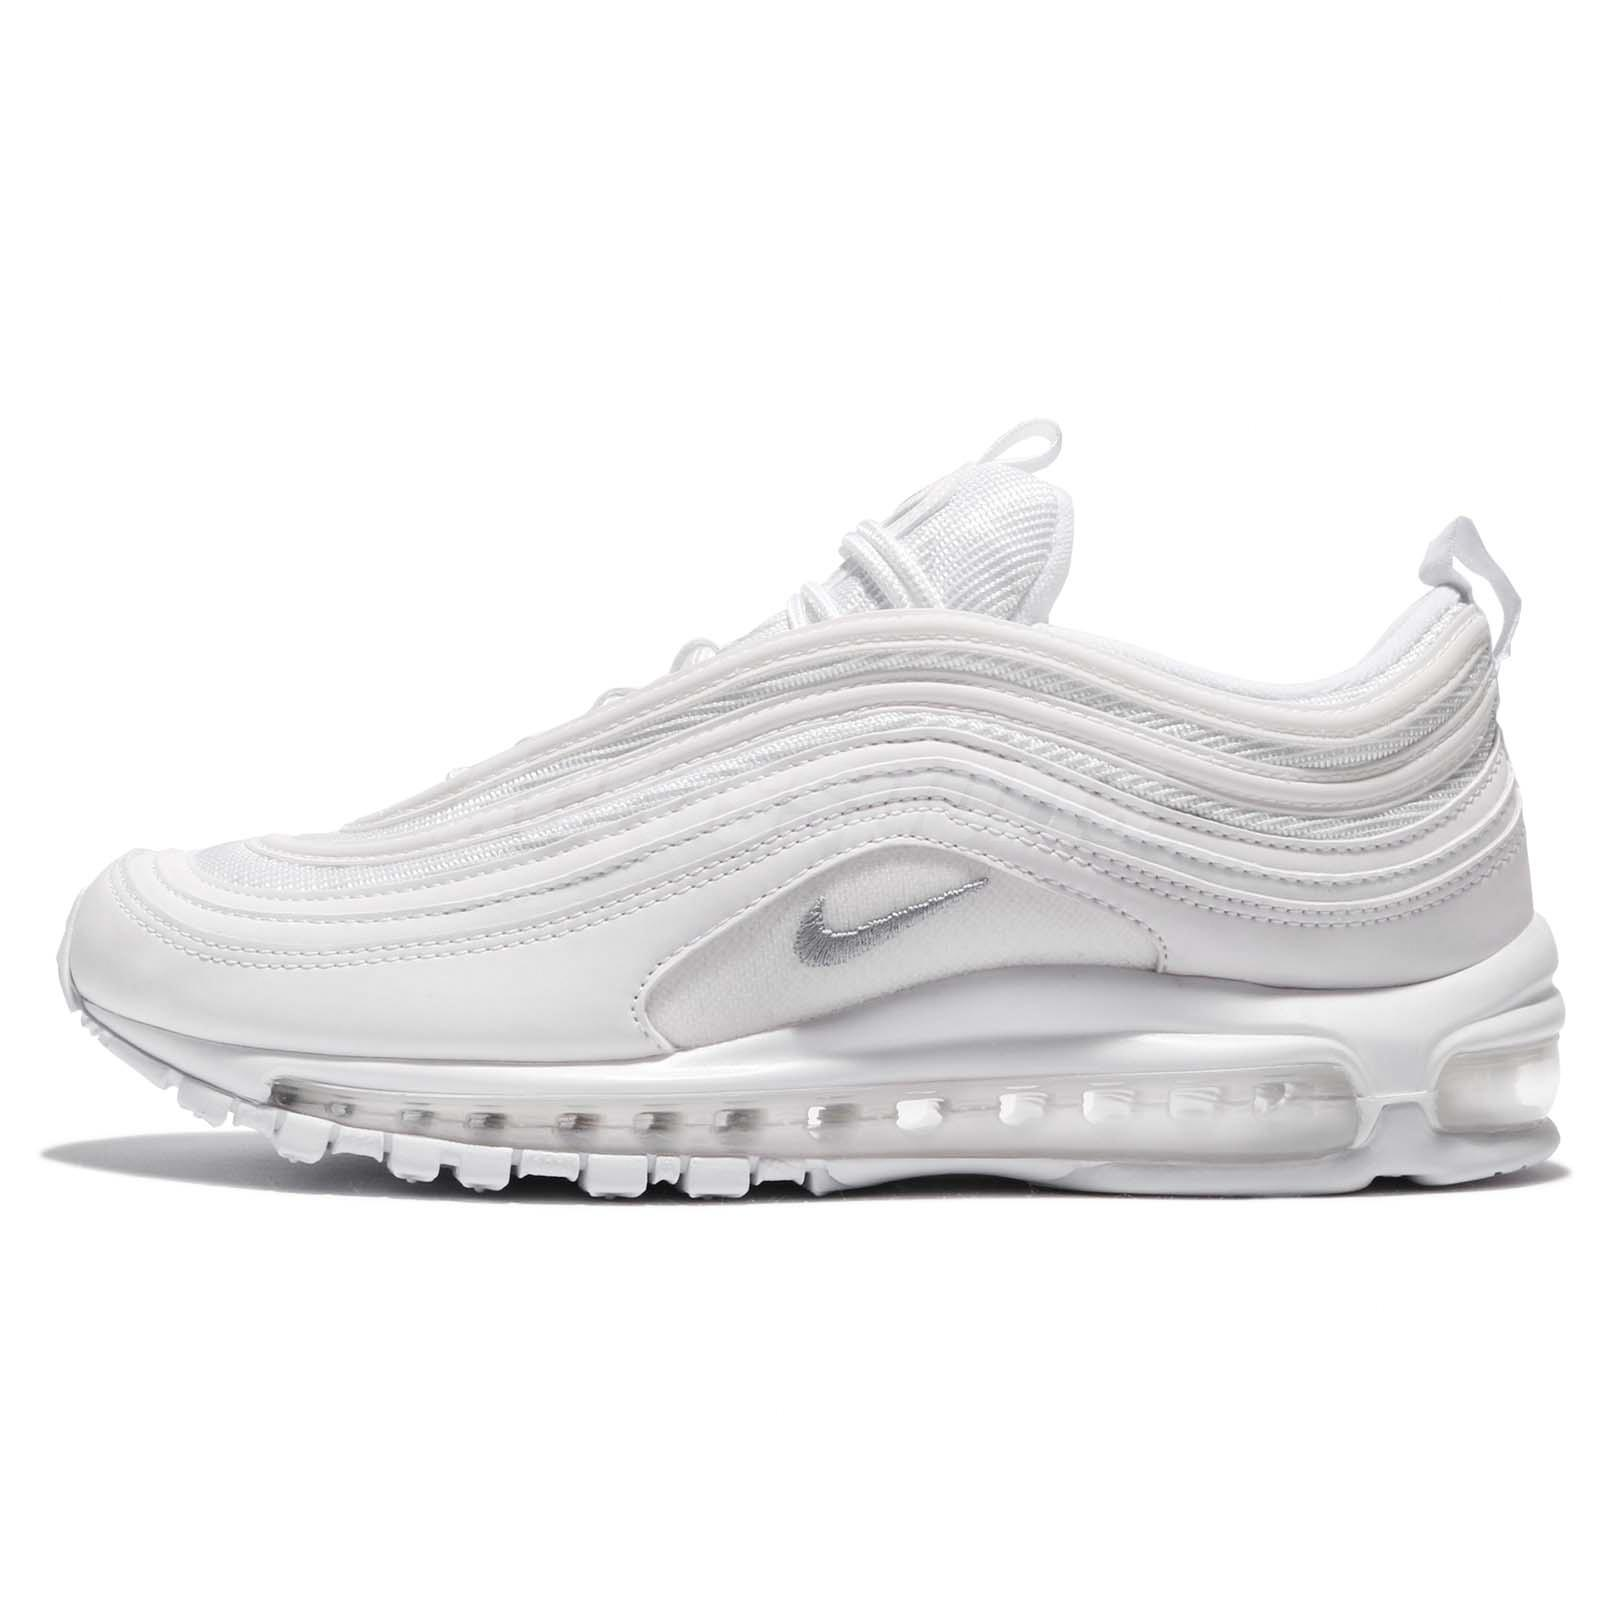 grey air max 97 og nz